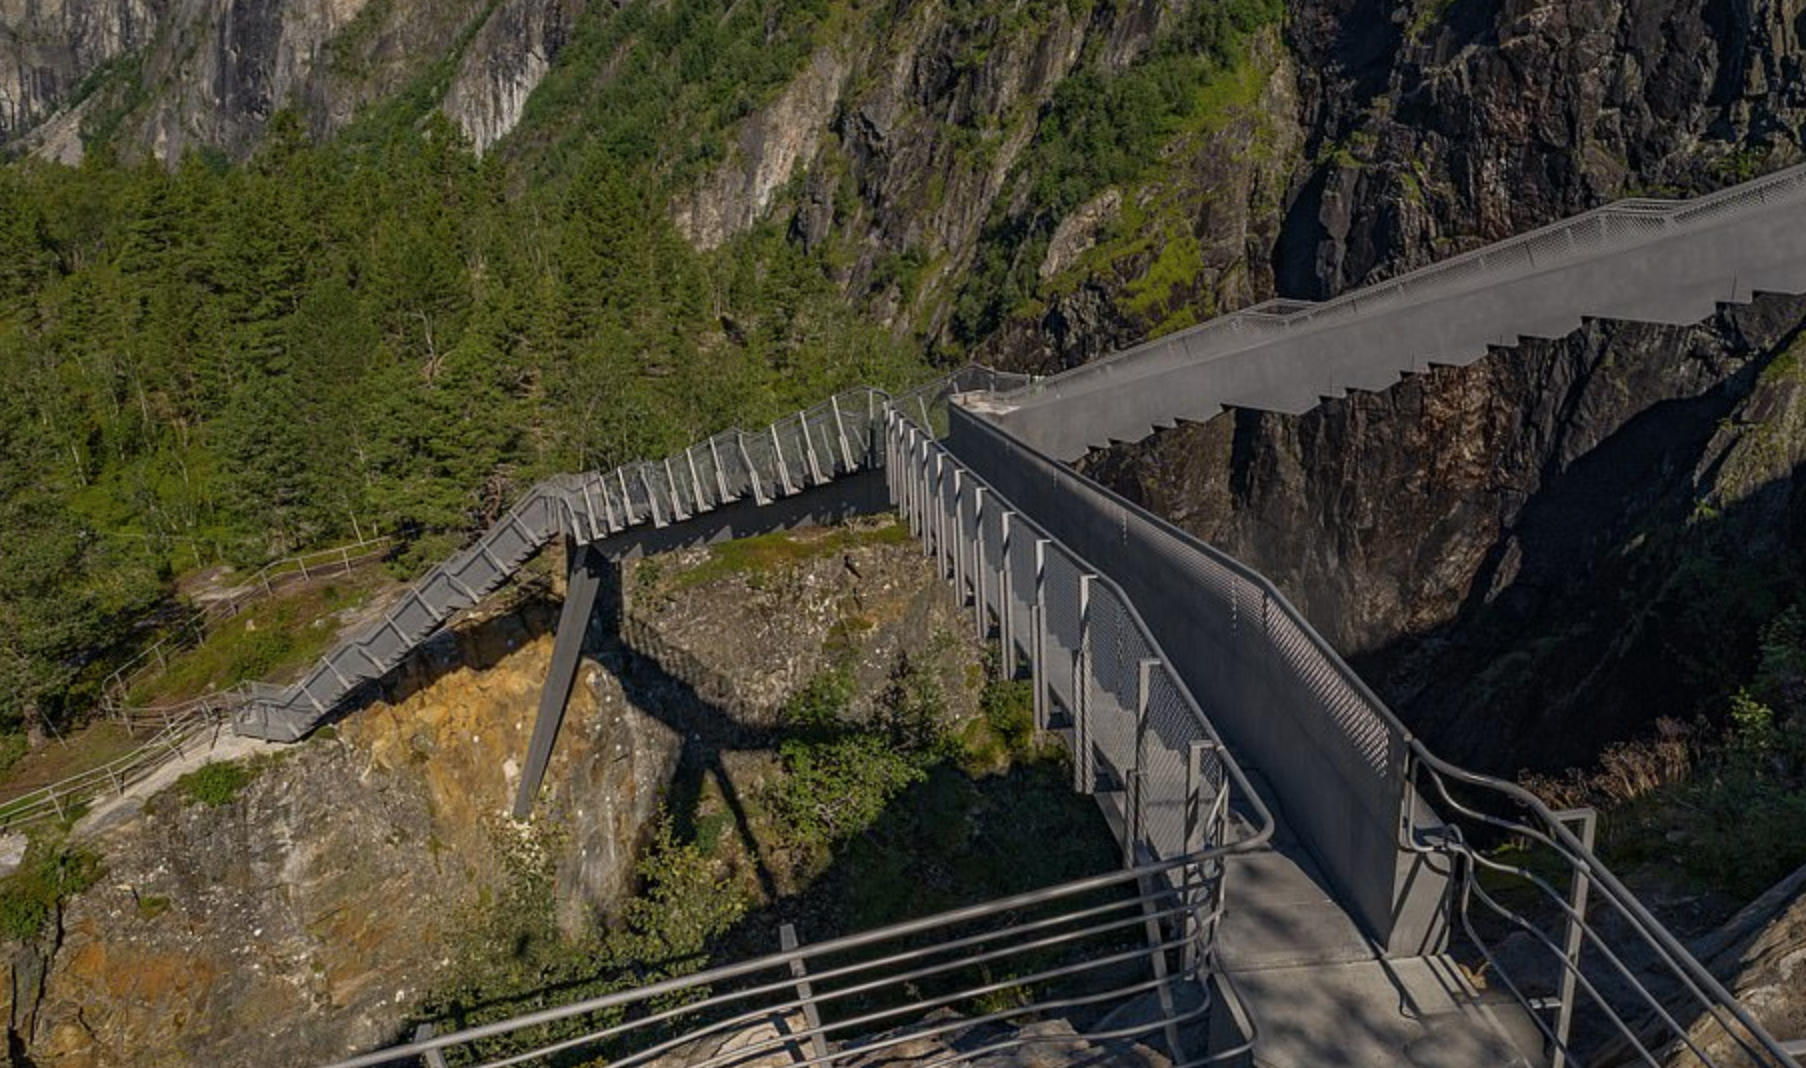 Norway opens vertiginous step bridge across gorge image